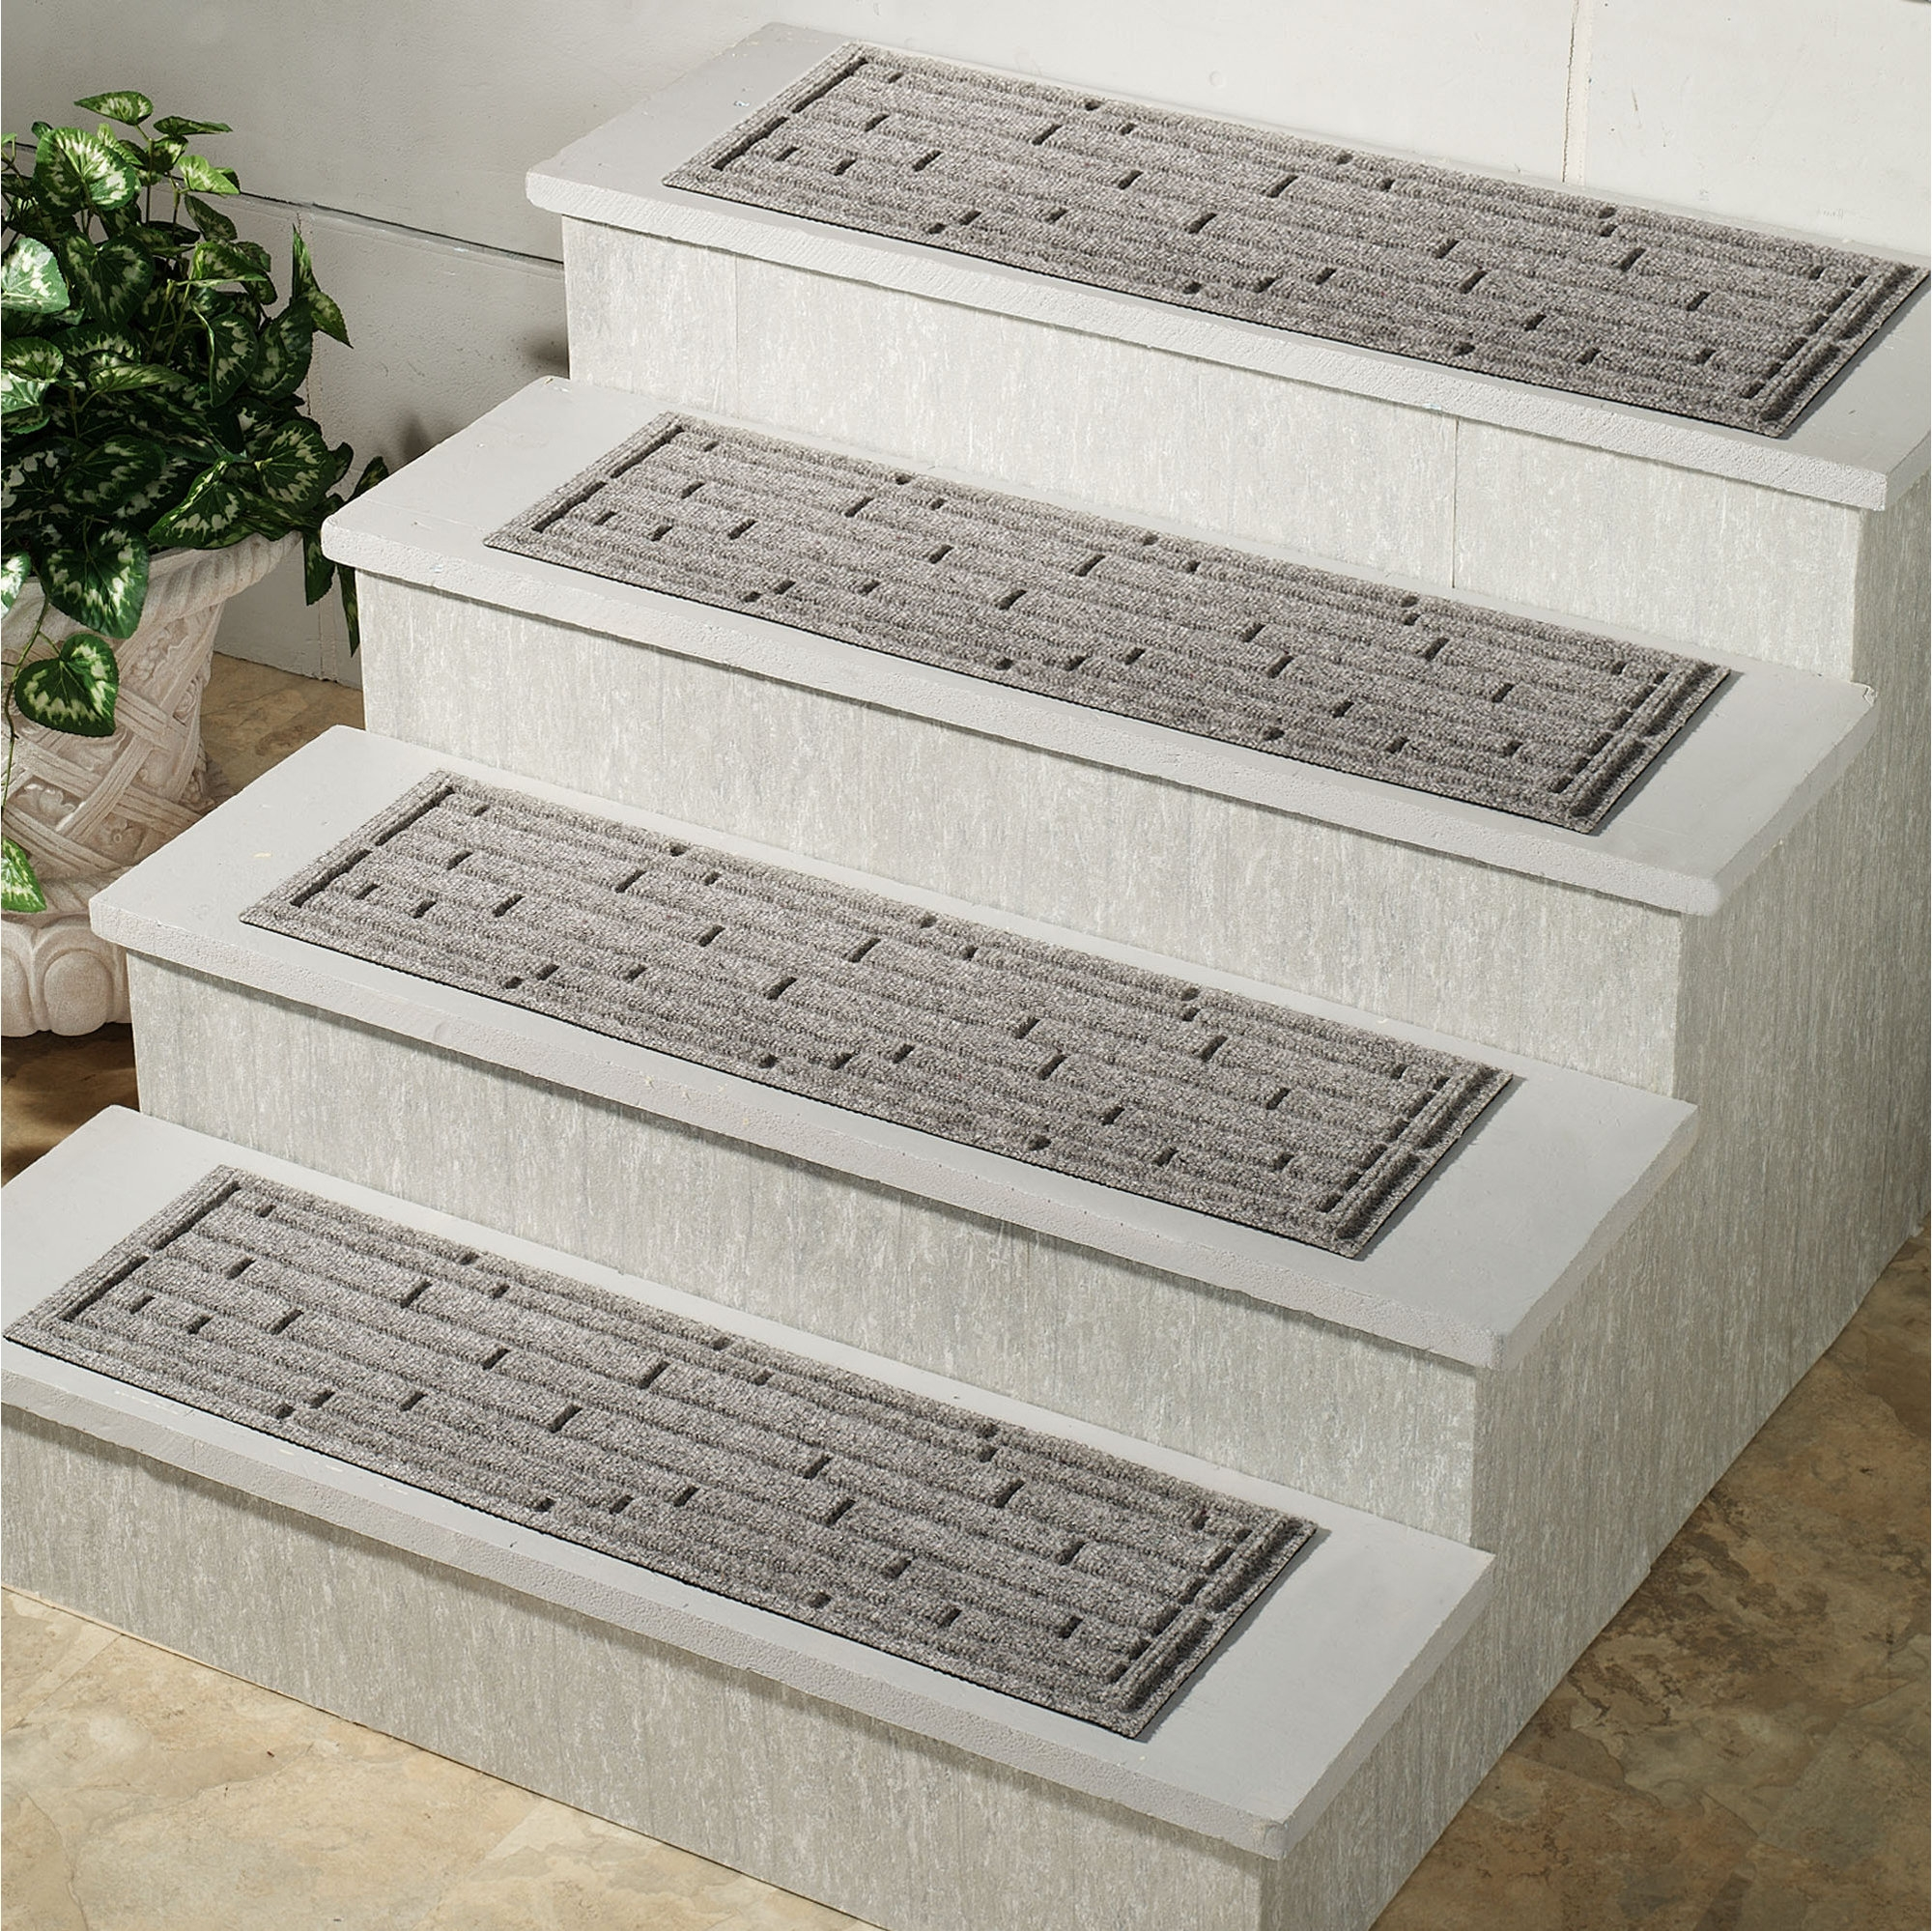 Stair Tread Covers Ideas About Stair Treads On Pinterest Carpet Intended For Carpet Step Covers For Stairs (#20 of 20)